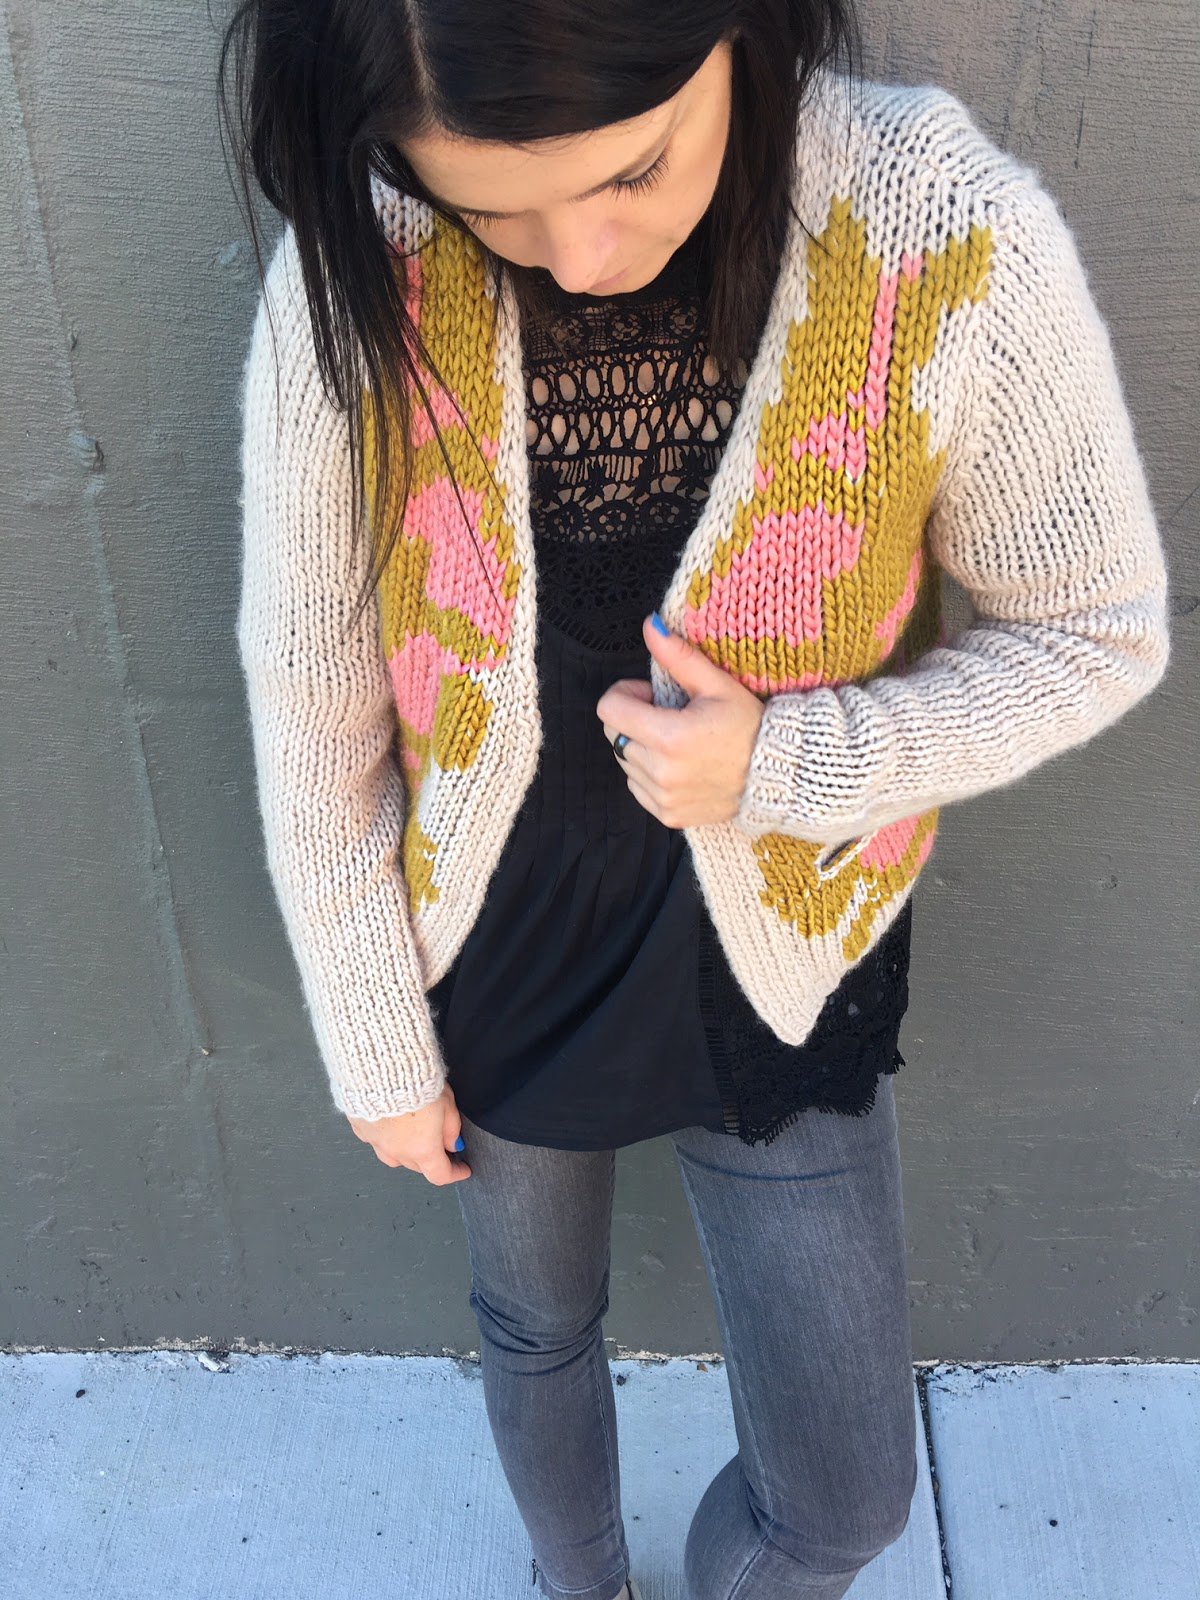 My favorite lace blouse & cardi